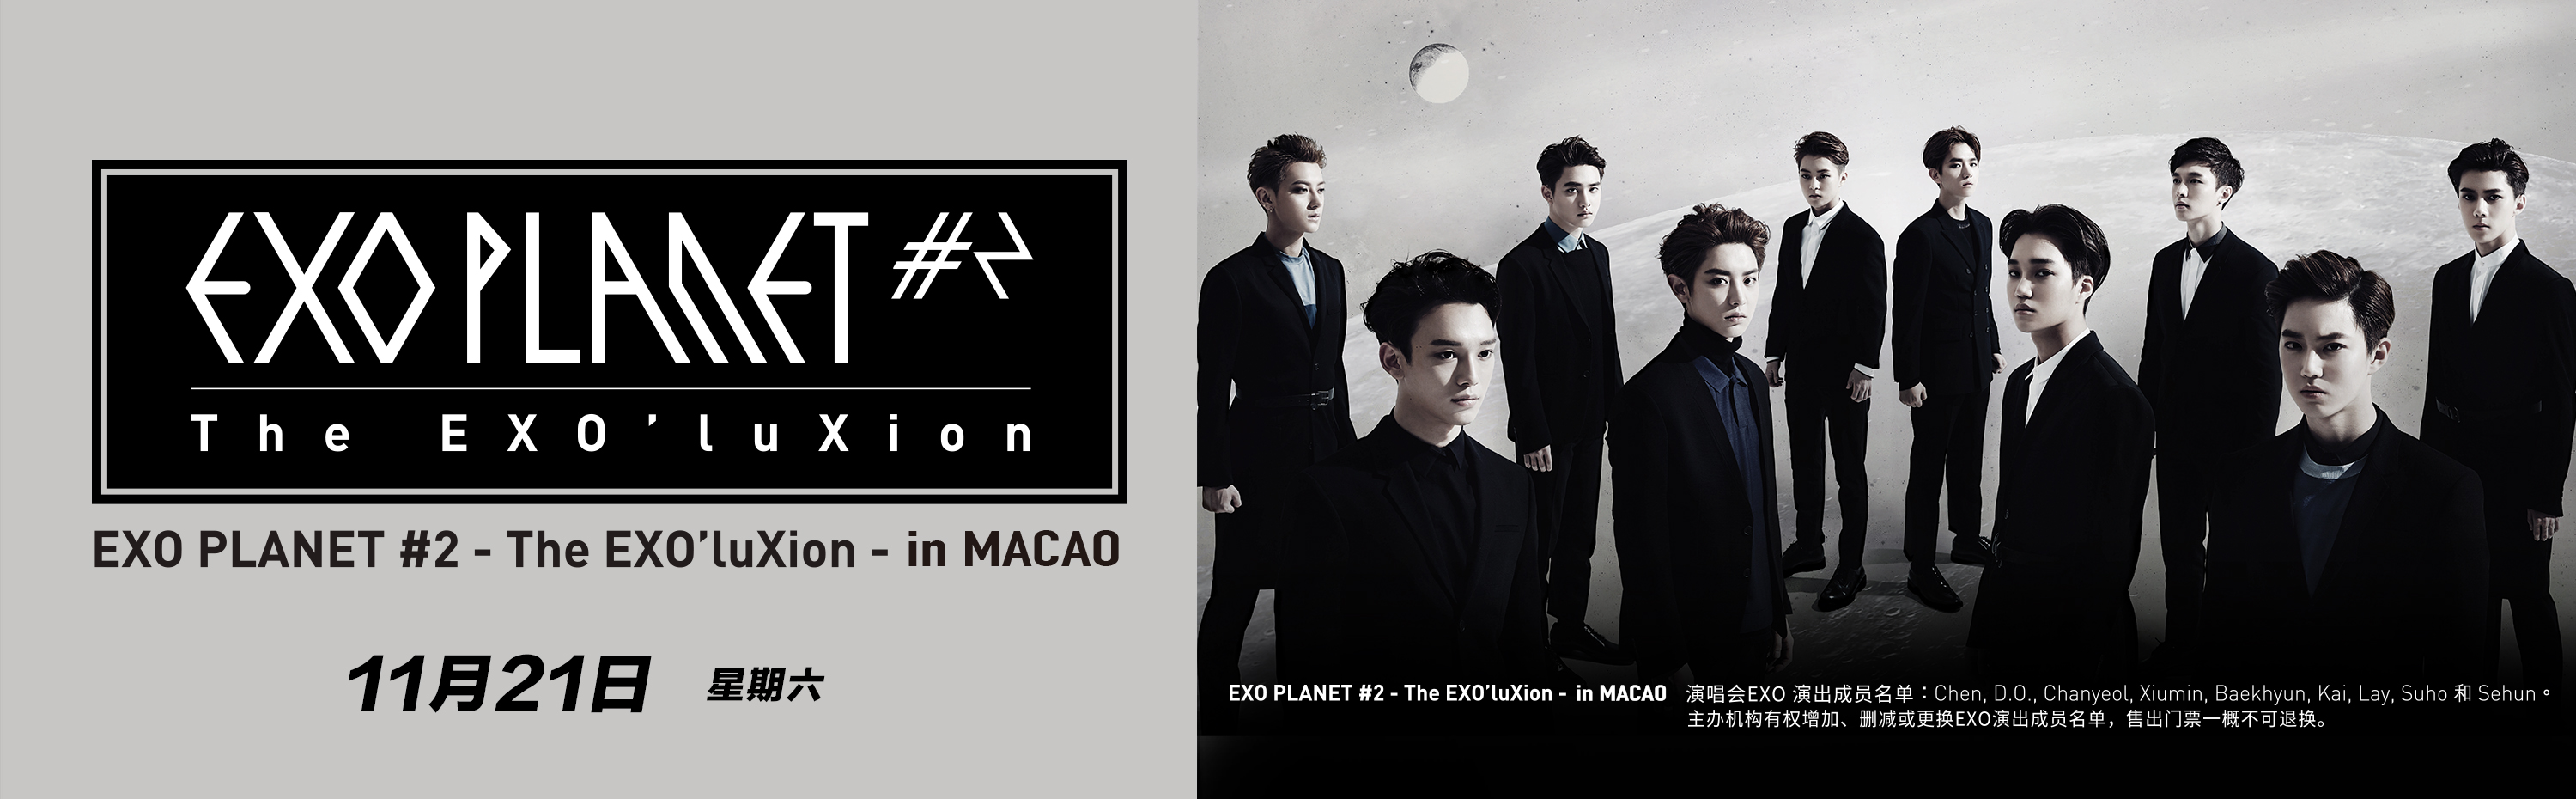 EXO PLANET #2 - The EXO'luXion - in MACAO